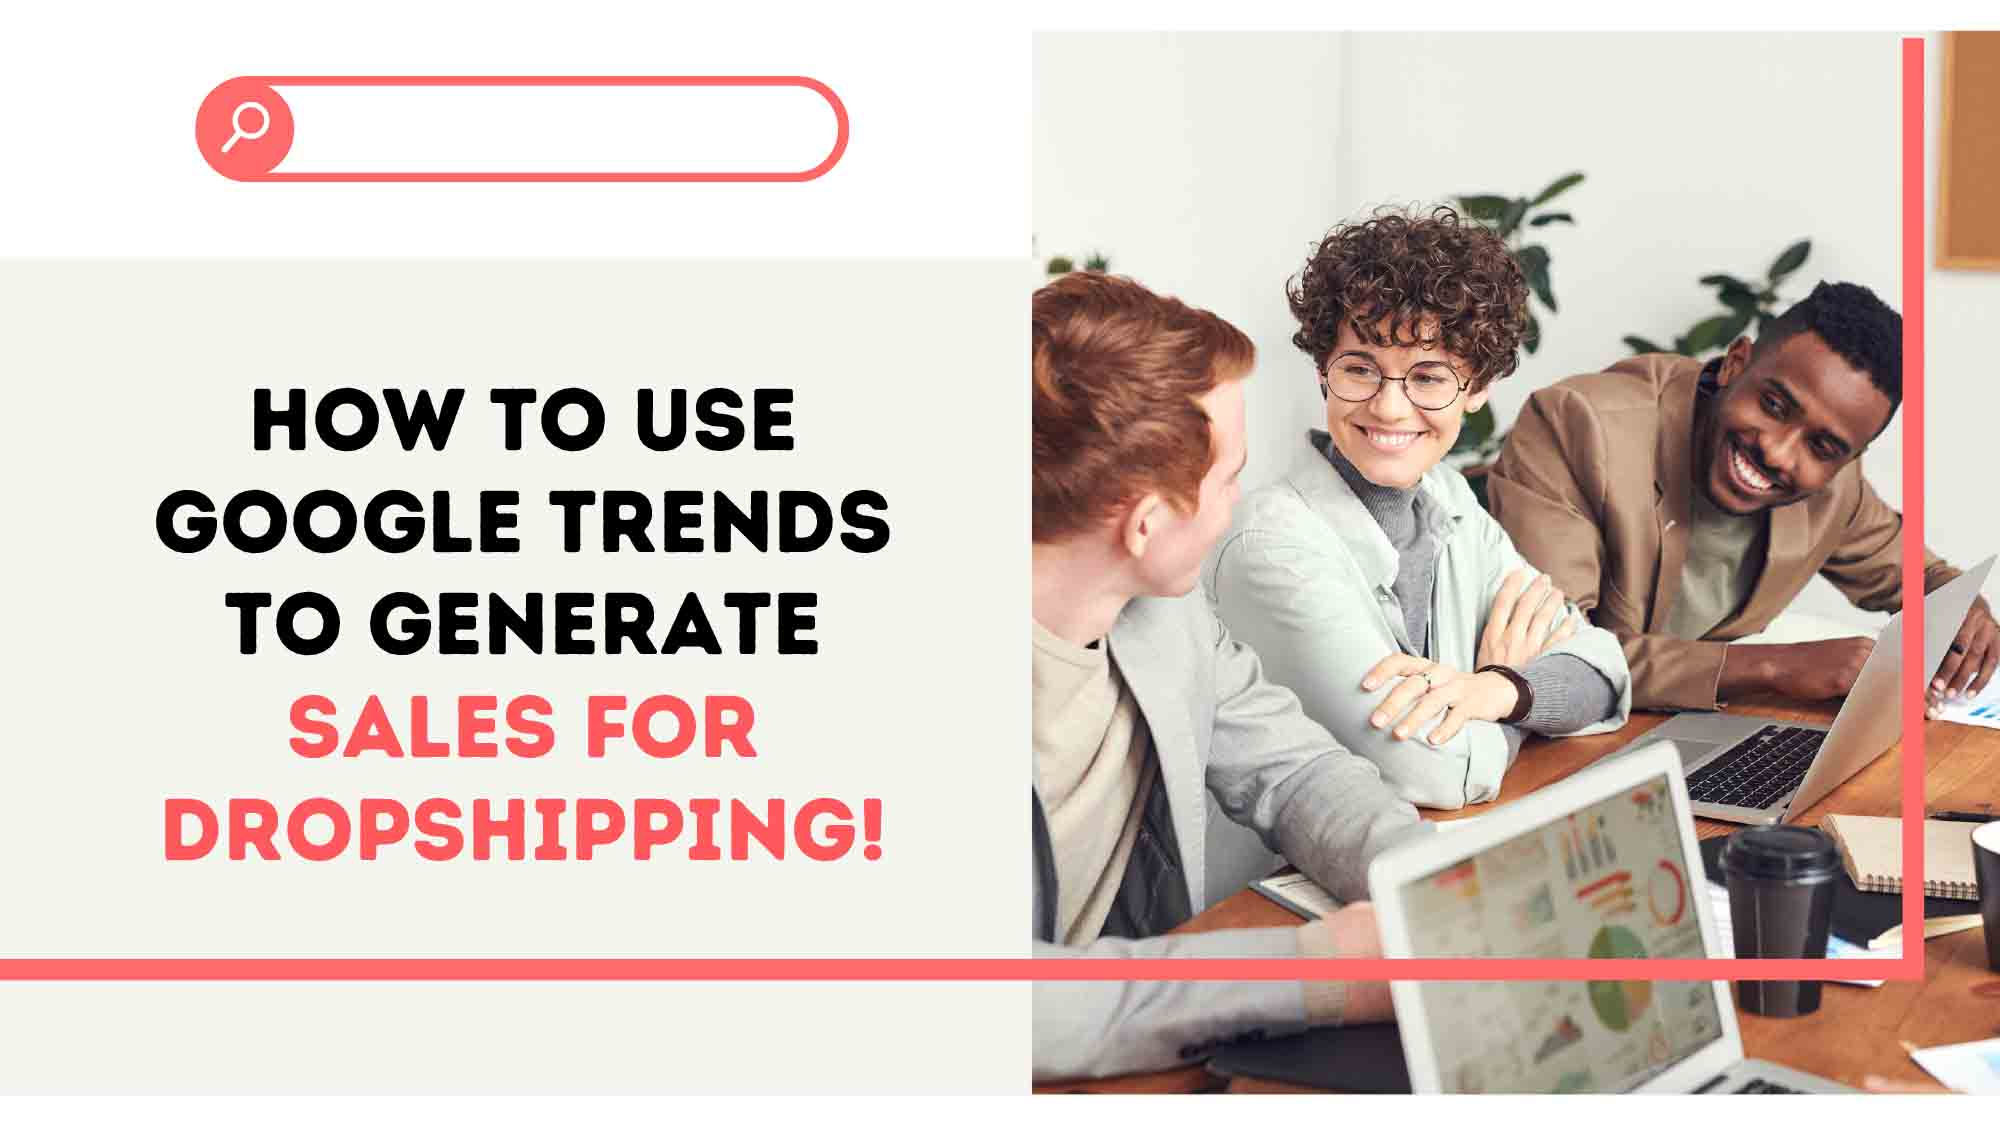 How To Use Google Trends To Generate Sales For Dropshipping!